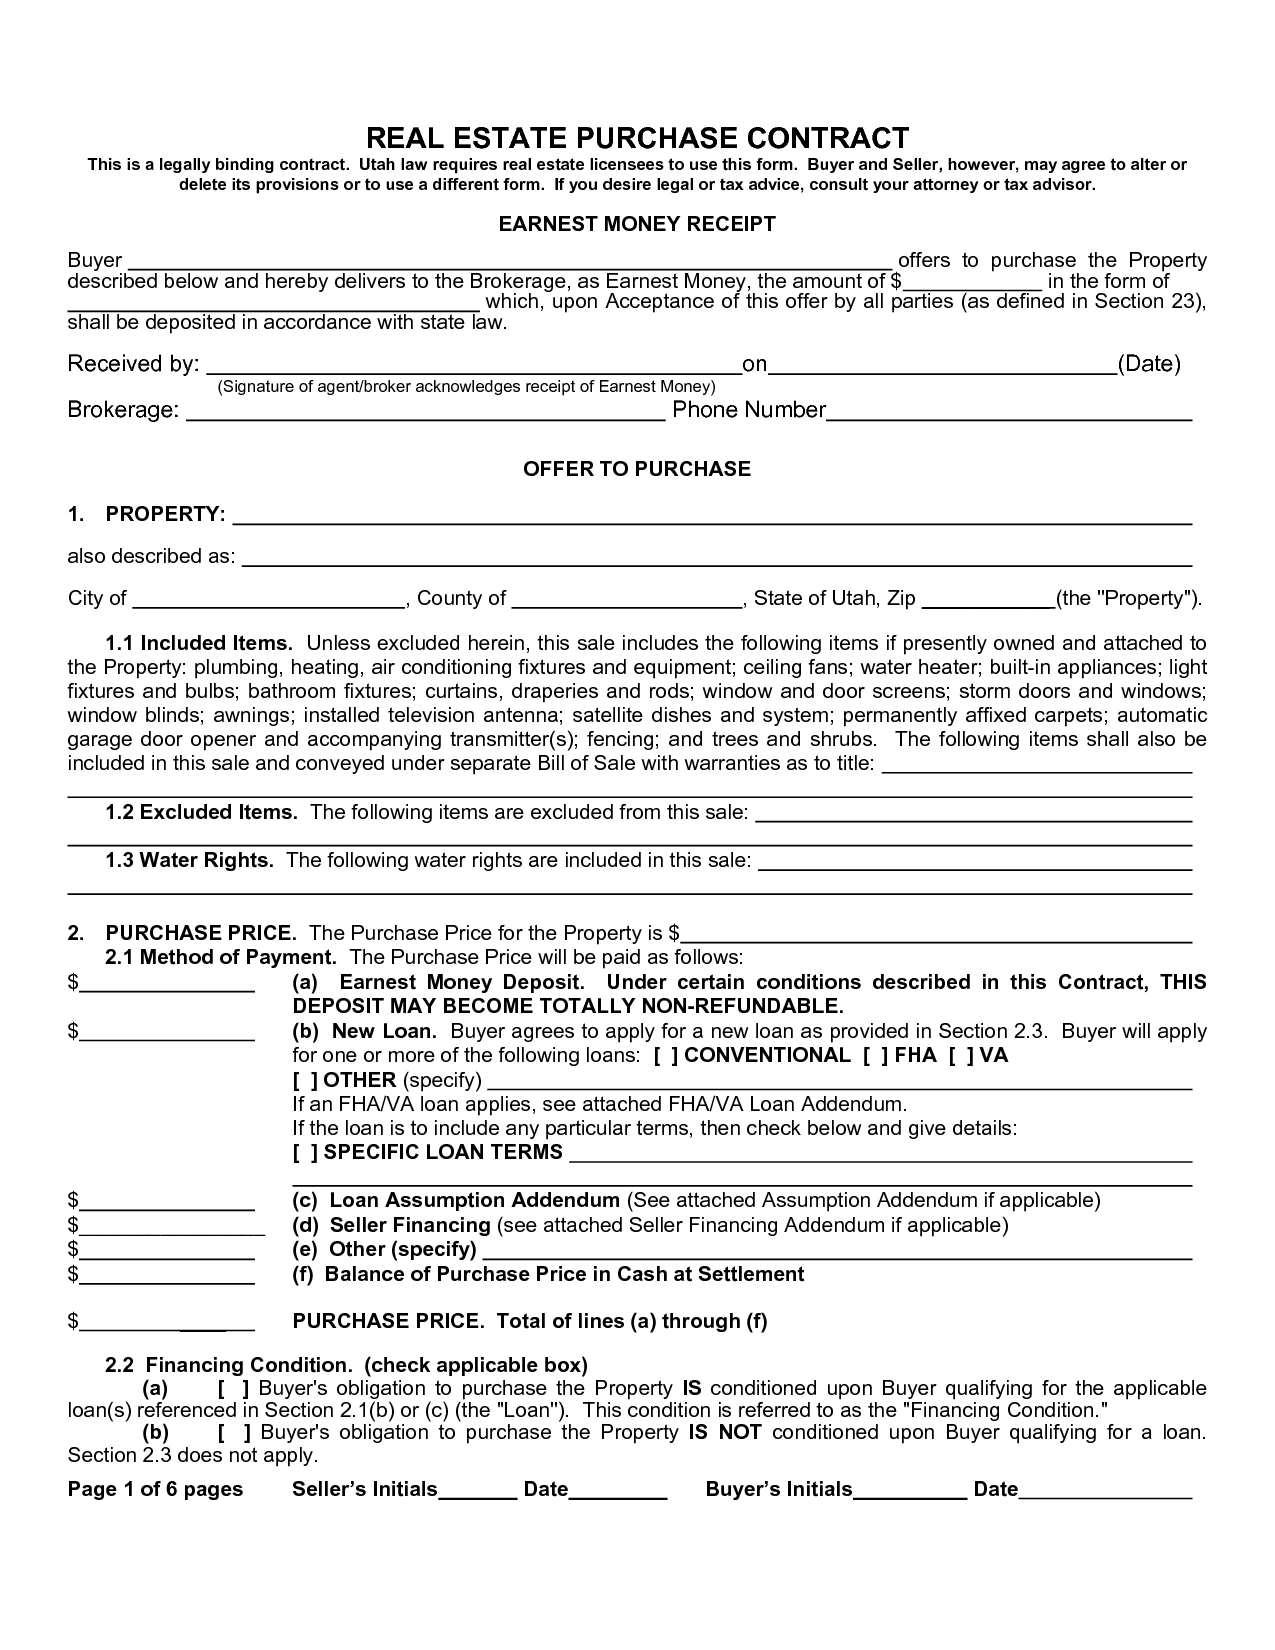 Attractive Real Estate Purchase Agreement Form Sample Image Gallery   ImgGrid   Free  Purchase Agreement Form Regarding Free Purchase Agreement Form